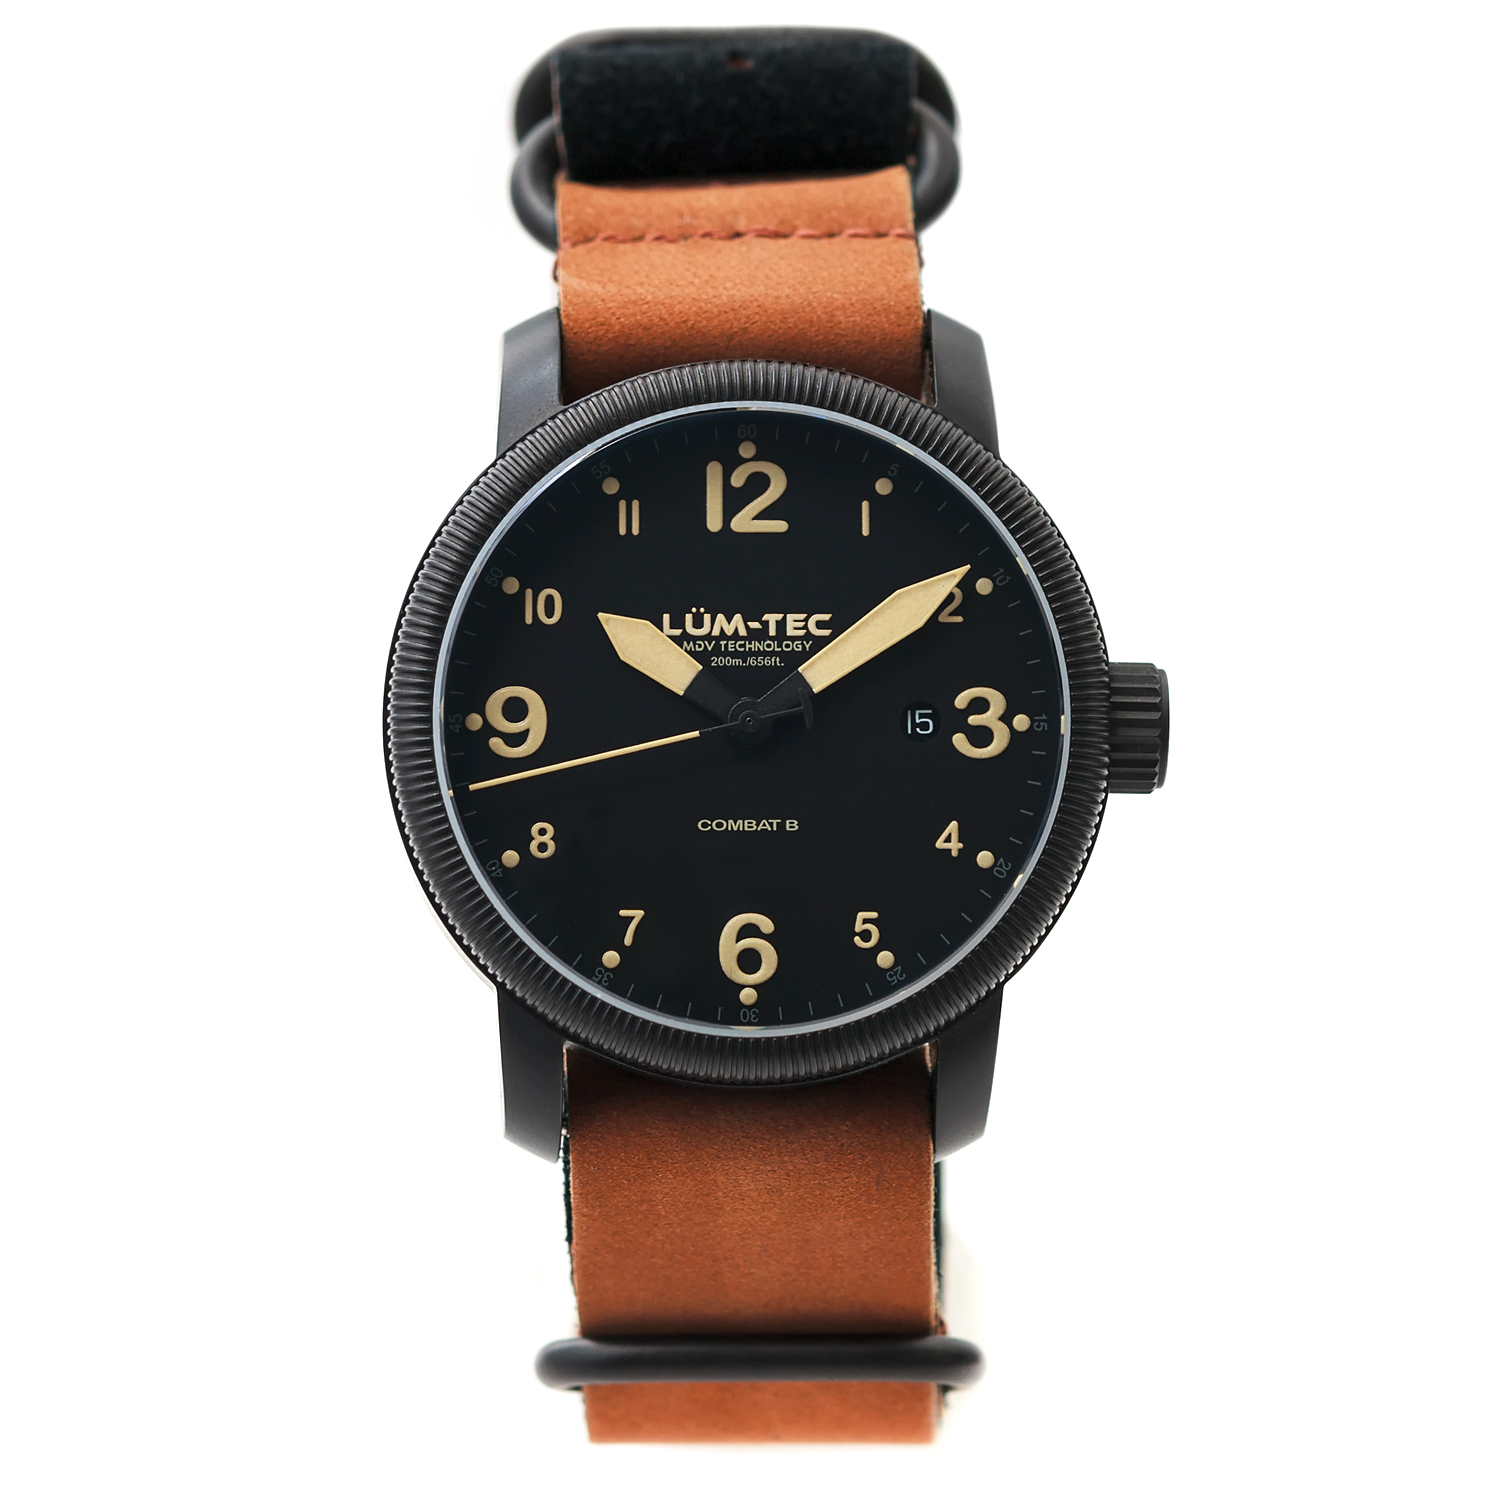 hiconsumption tec lum combat watches watch purchase phantom